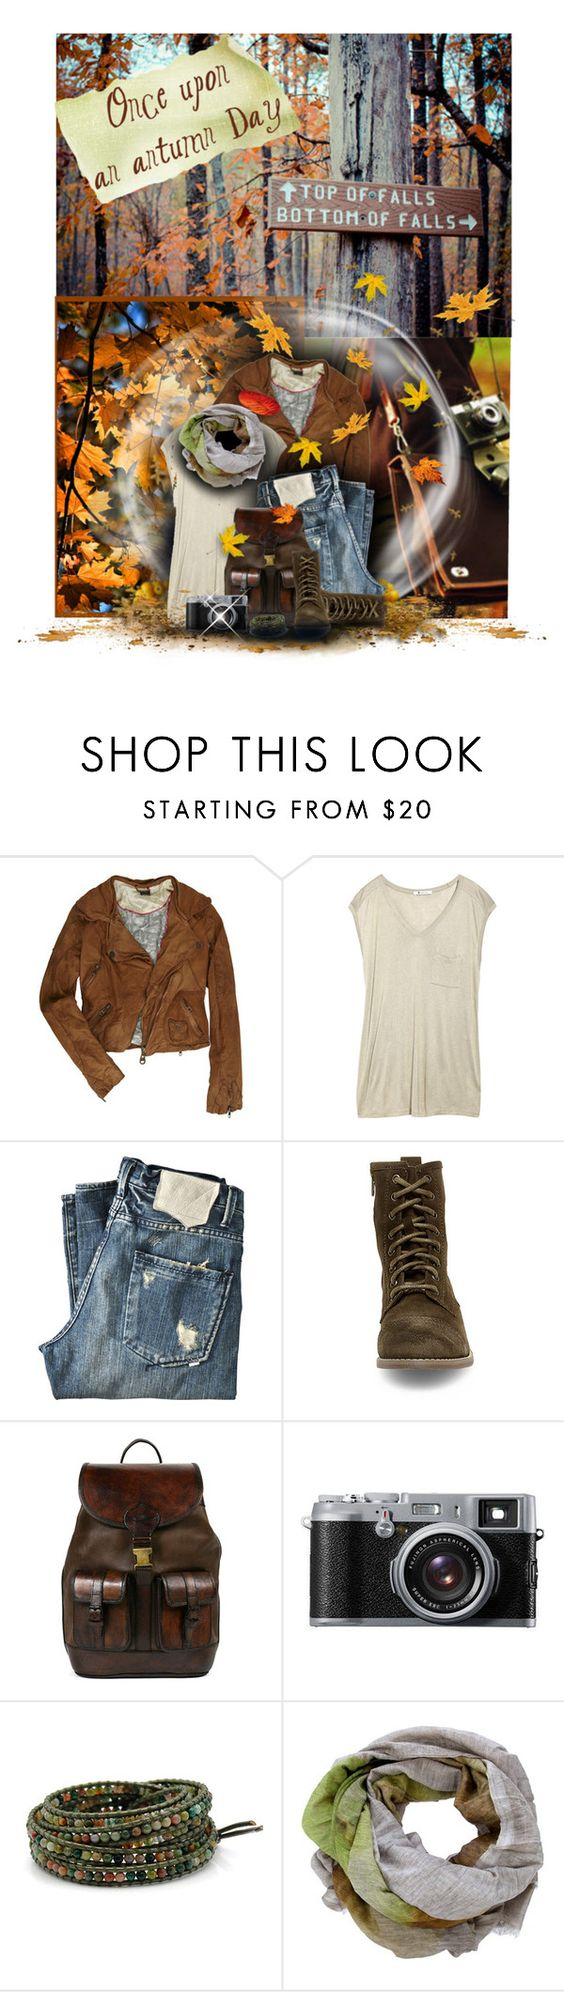 """""""Let's Go For A Hike..."""" by cindycook10 ❤ liked on Polyvore featuring Doma, T By Alexander Wang, KING, Steve Madden, Beara Beara, Fujifilm, Chan Luu, Faliero Sarti and falloutfit"""